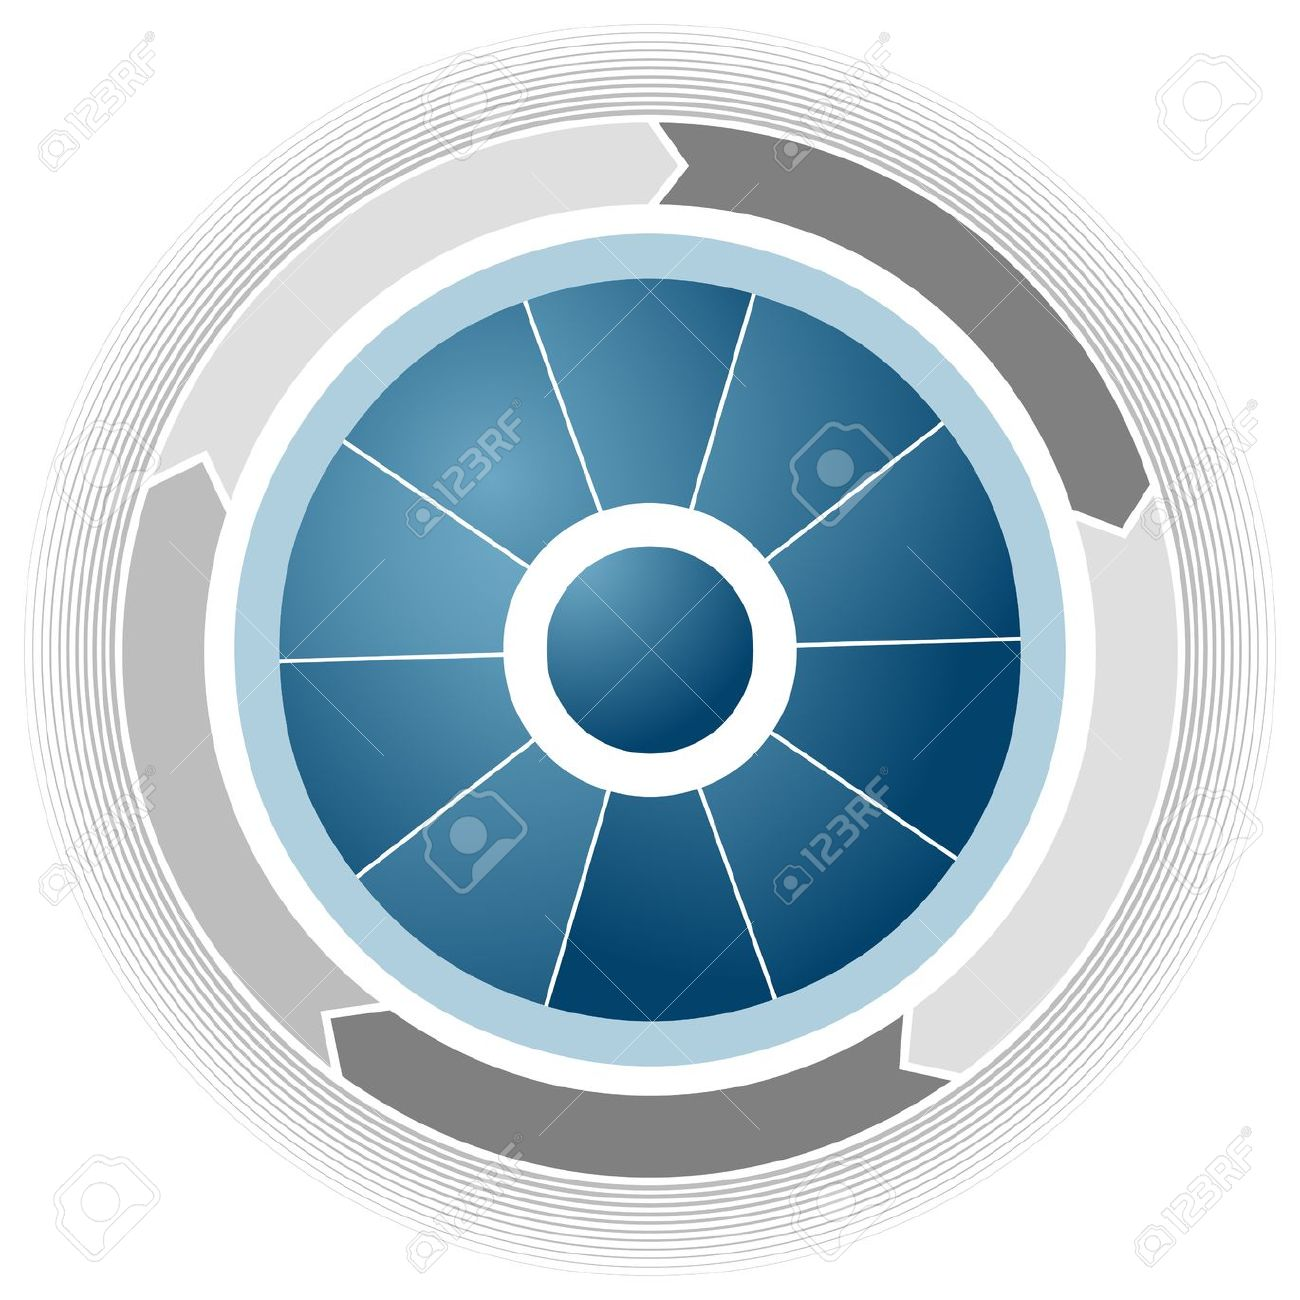 Hub of the wheels clipart clipground an image of a blue corporate business wheel royalty free cliparts ccuart Images